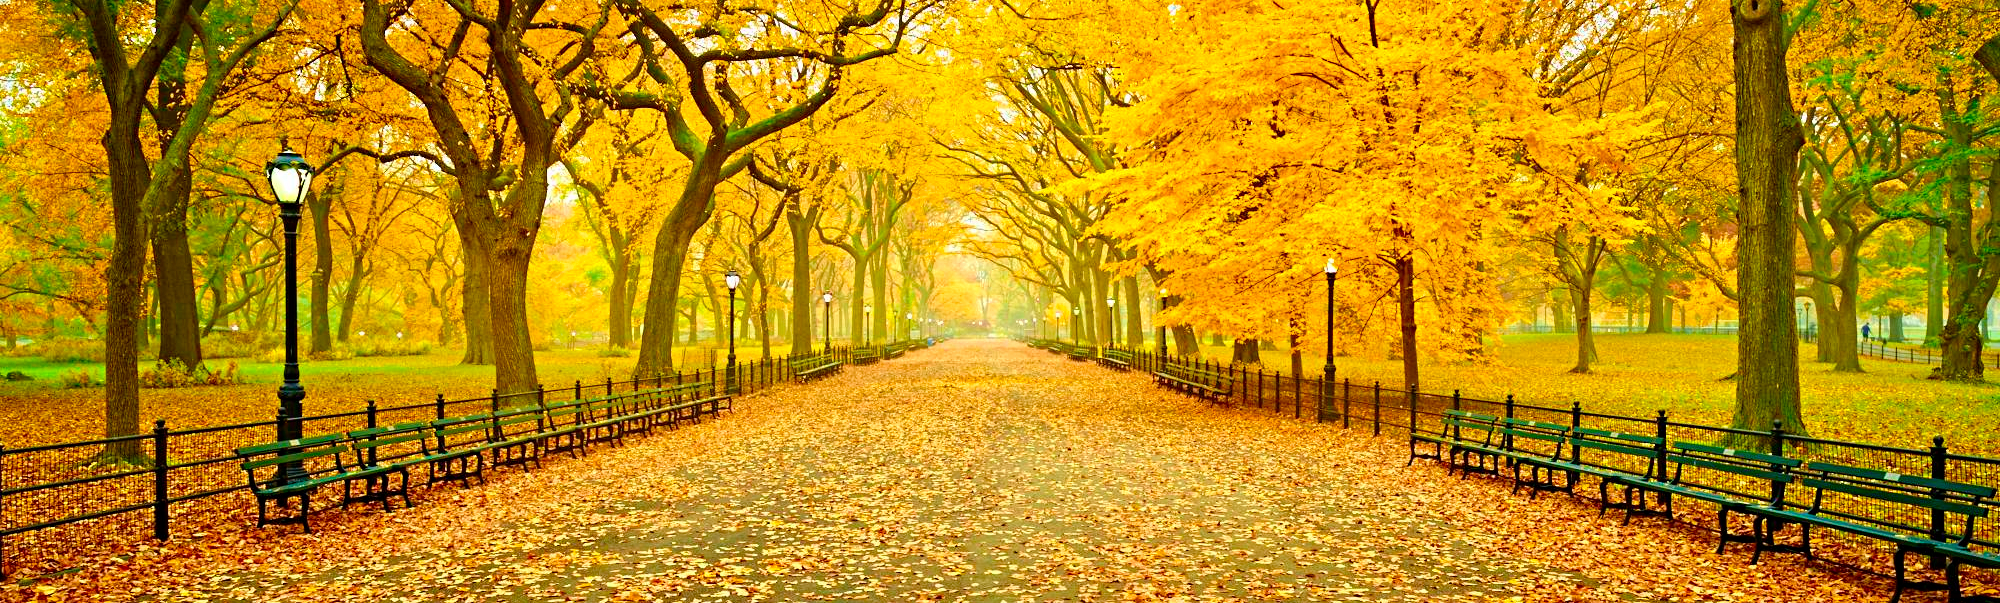 central-park-panoramic-new-york-city-autumn-fall-foliage-literary-walk-tree-lined-mall-high-definition-hd-professional-photography(1).jpg